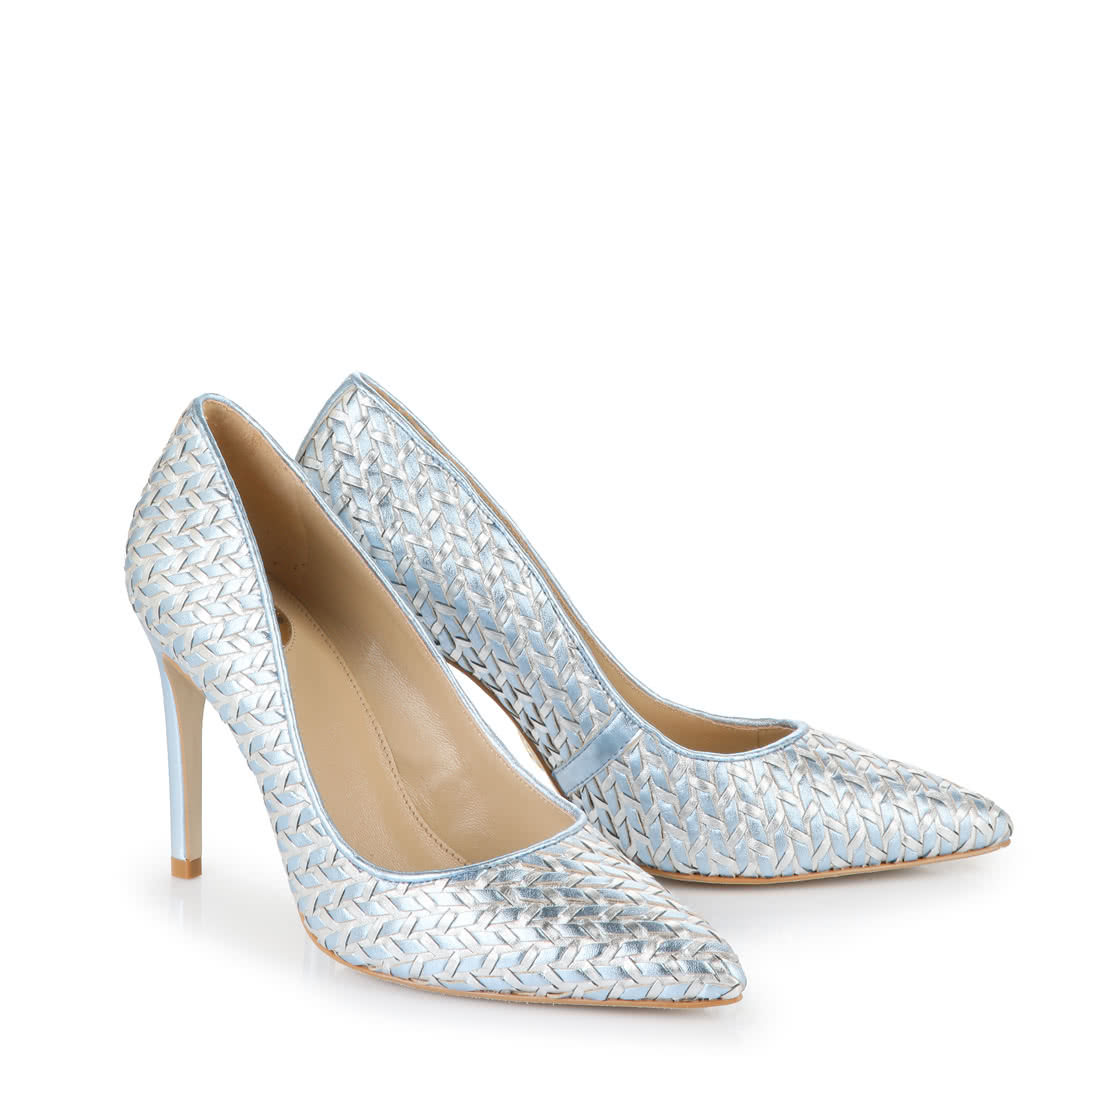 Buffalo Pumps in hellblausilber metallic online kaufen